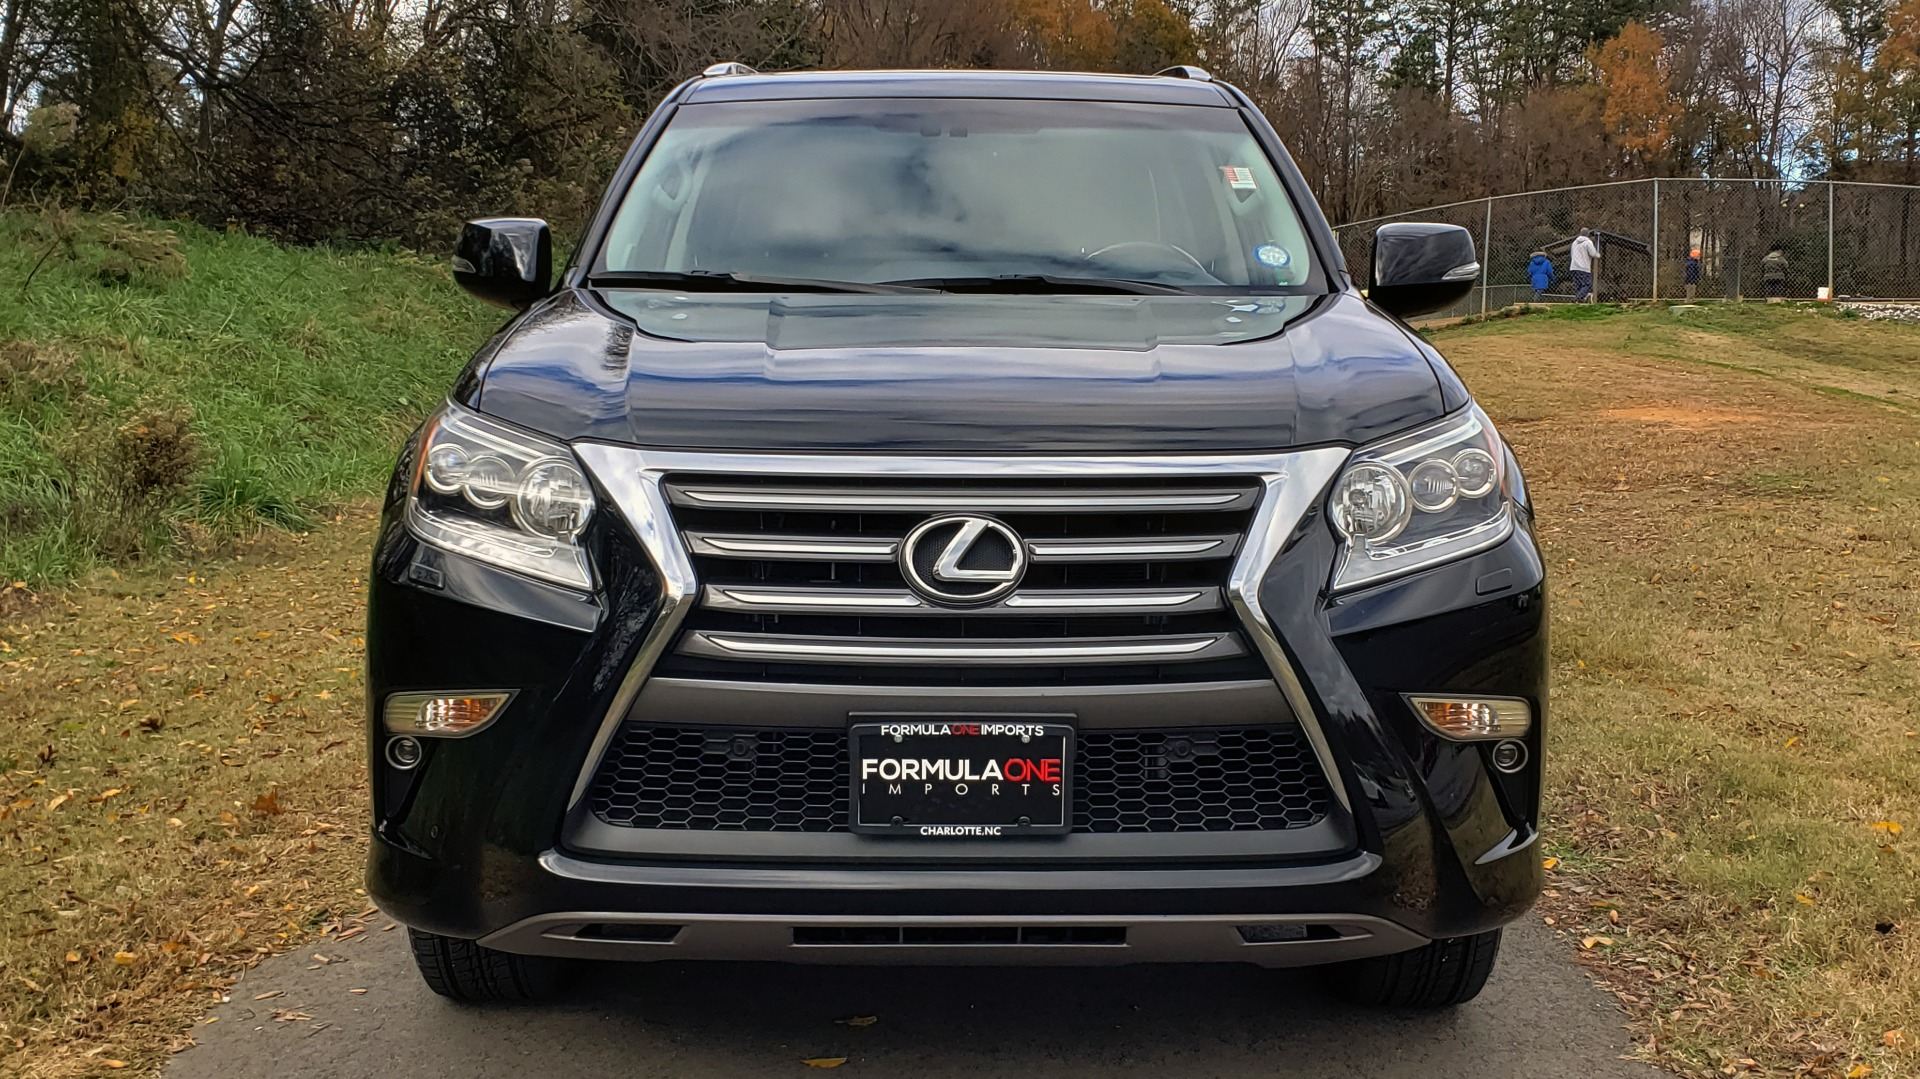 Used 2017 Lexus GX 460 PREMIUM / 4WD / NAV / SUNROOF / 3-ROW / BSM / REARVIEW for sale $34,995 at Formula Imports in Charlotte NC 28227 23